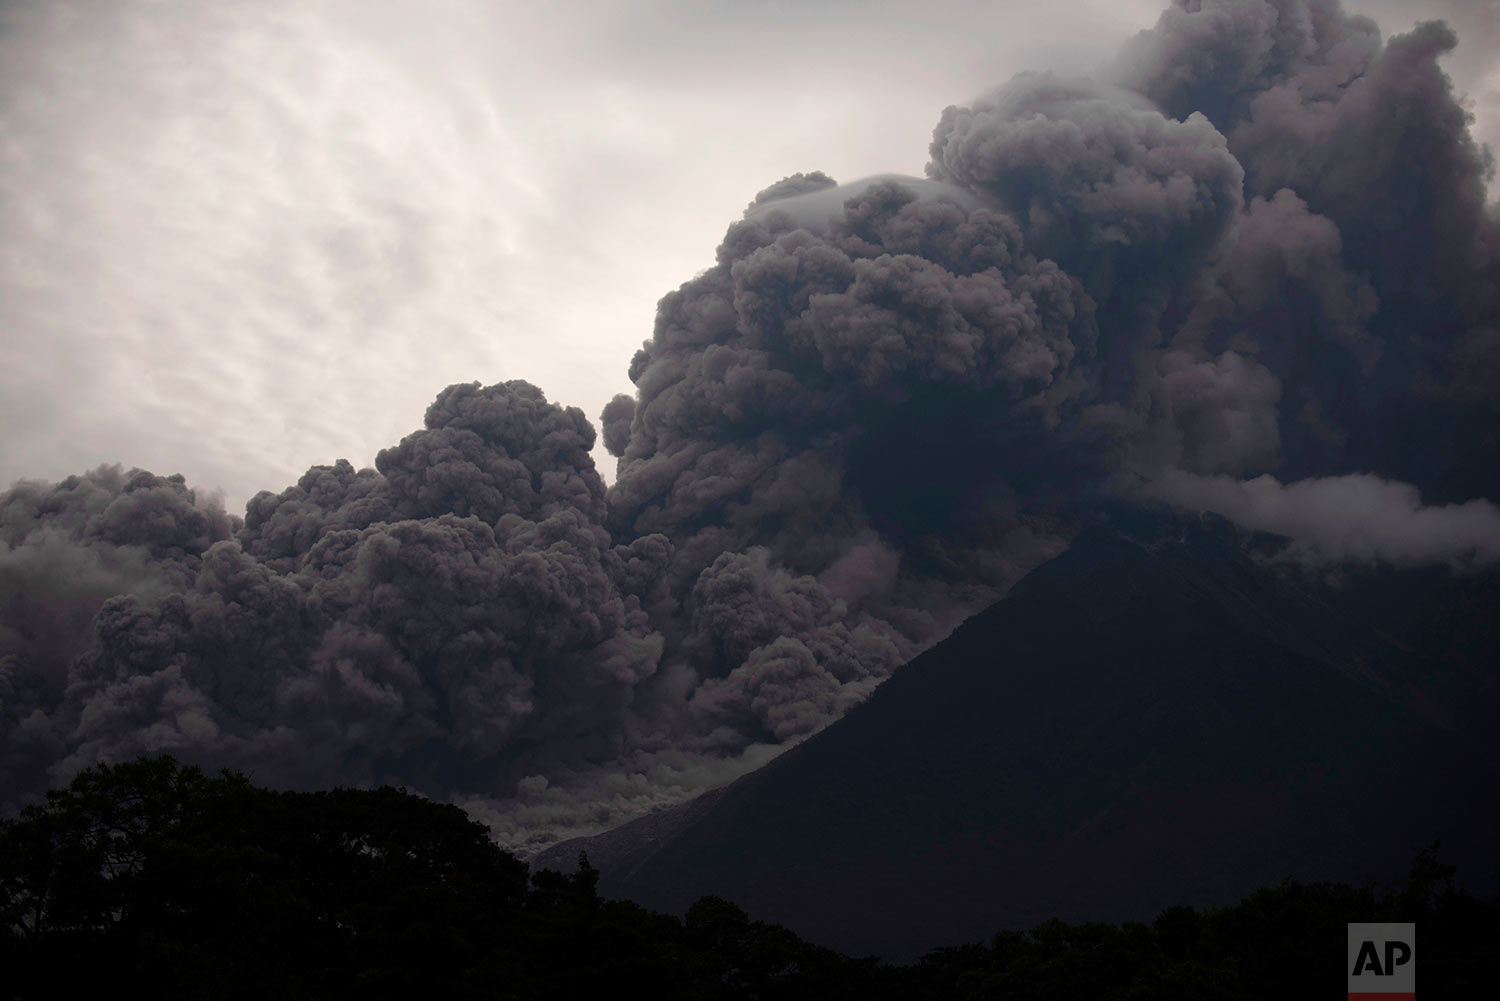 Volcan de Fuego, or Volcano of Fire, blows outs a thick cloud of ash, as seen from Alotenango, Guatemala, June 3, 2018. (AP Photo/Santiago Billy)